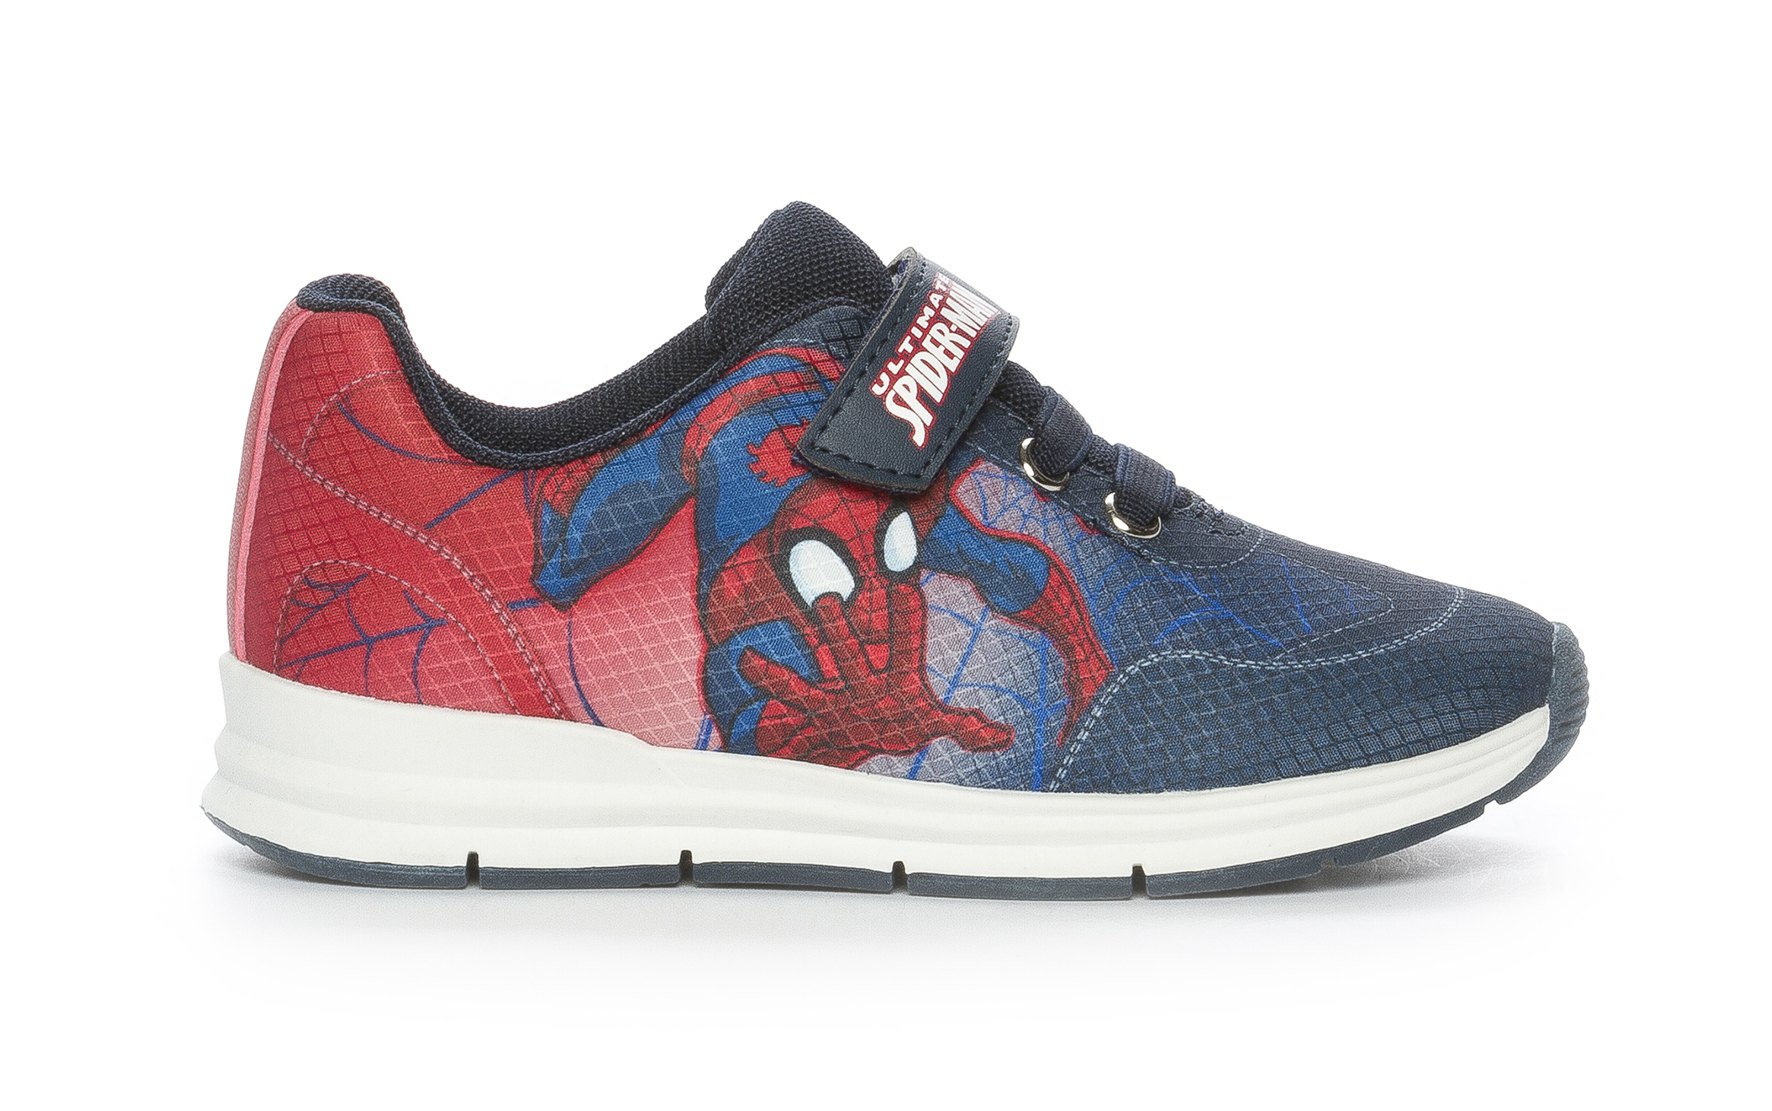 1cd7a931 Spiderman Sneakers - Blå 307307 feetfirst.no